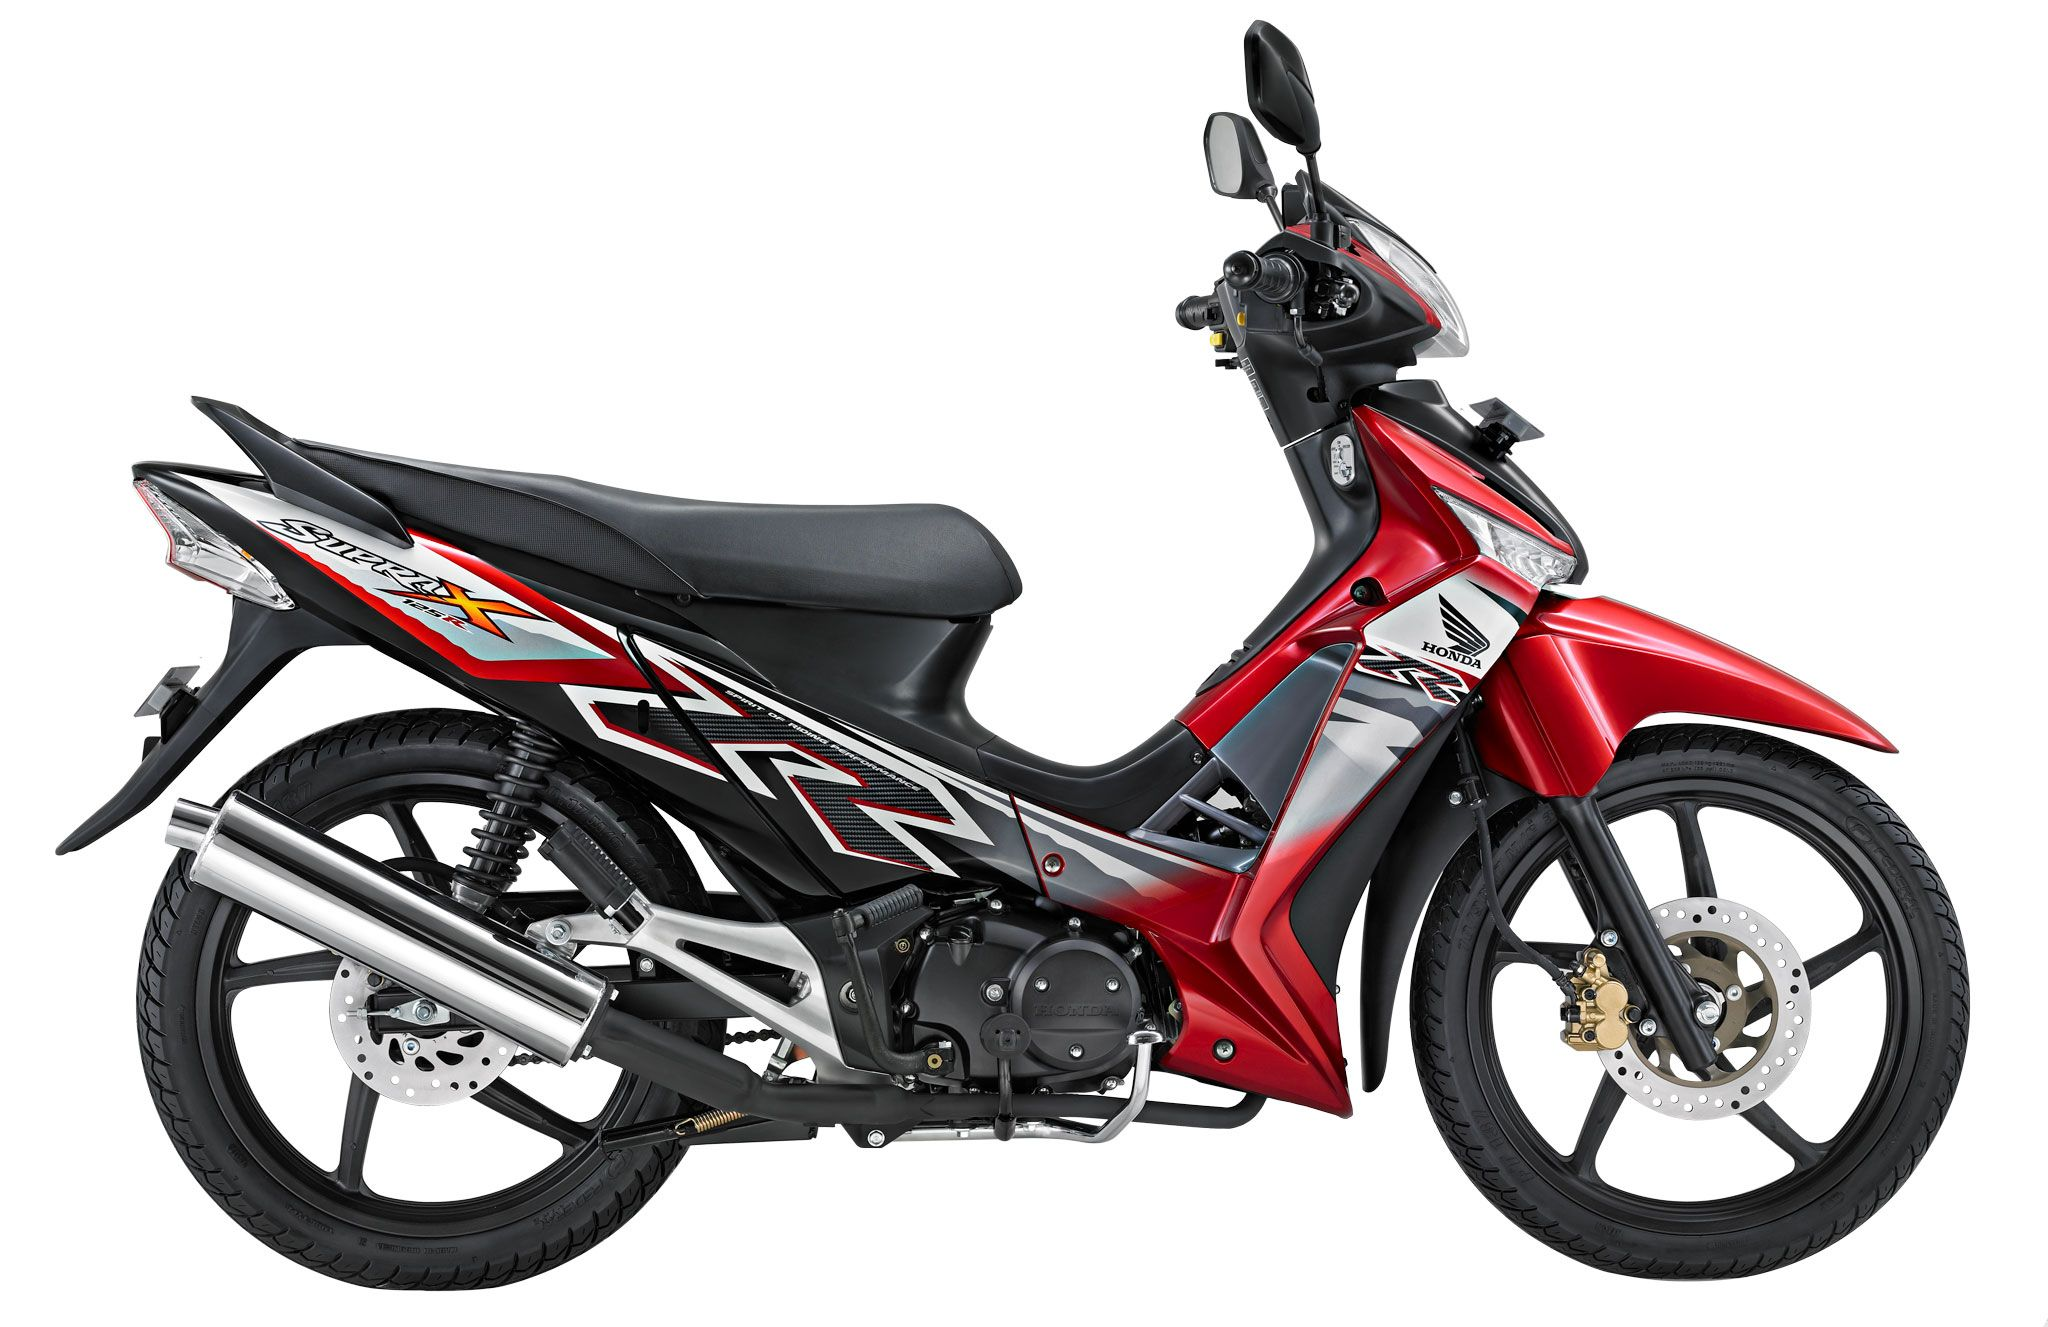 Supra x 125 cw the most populat motorcycle on indonesia